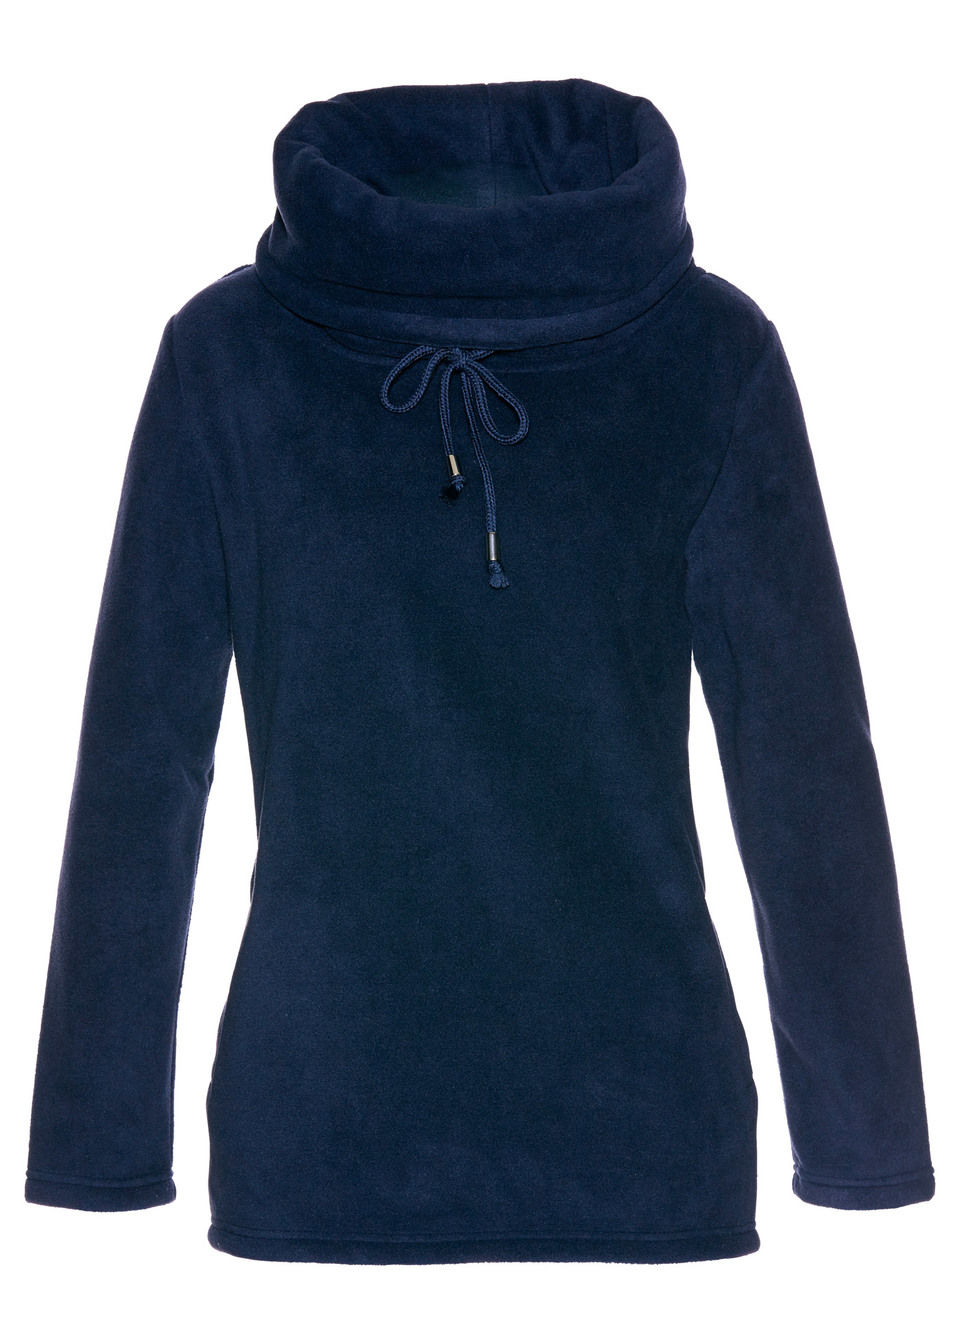 Pulover fleece bonprix de la bpc selection